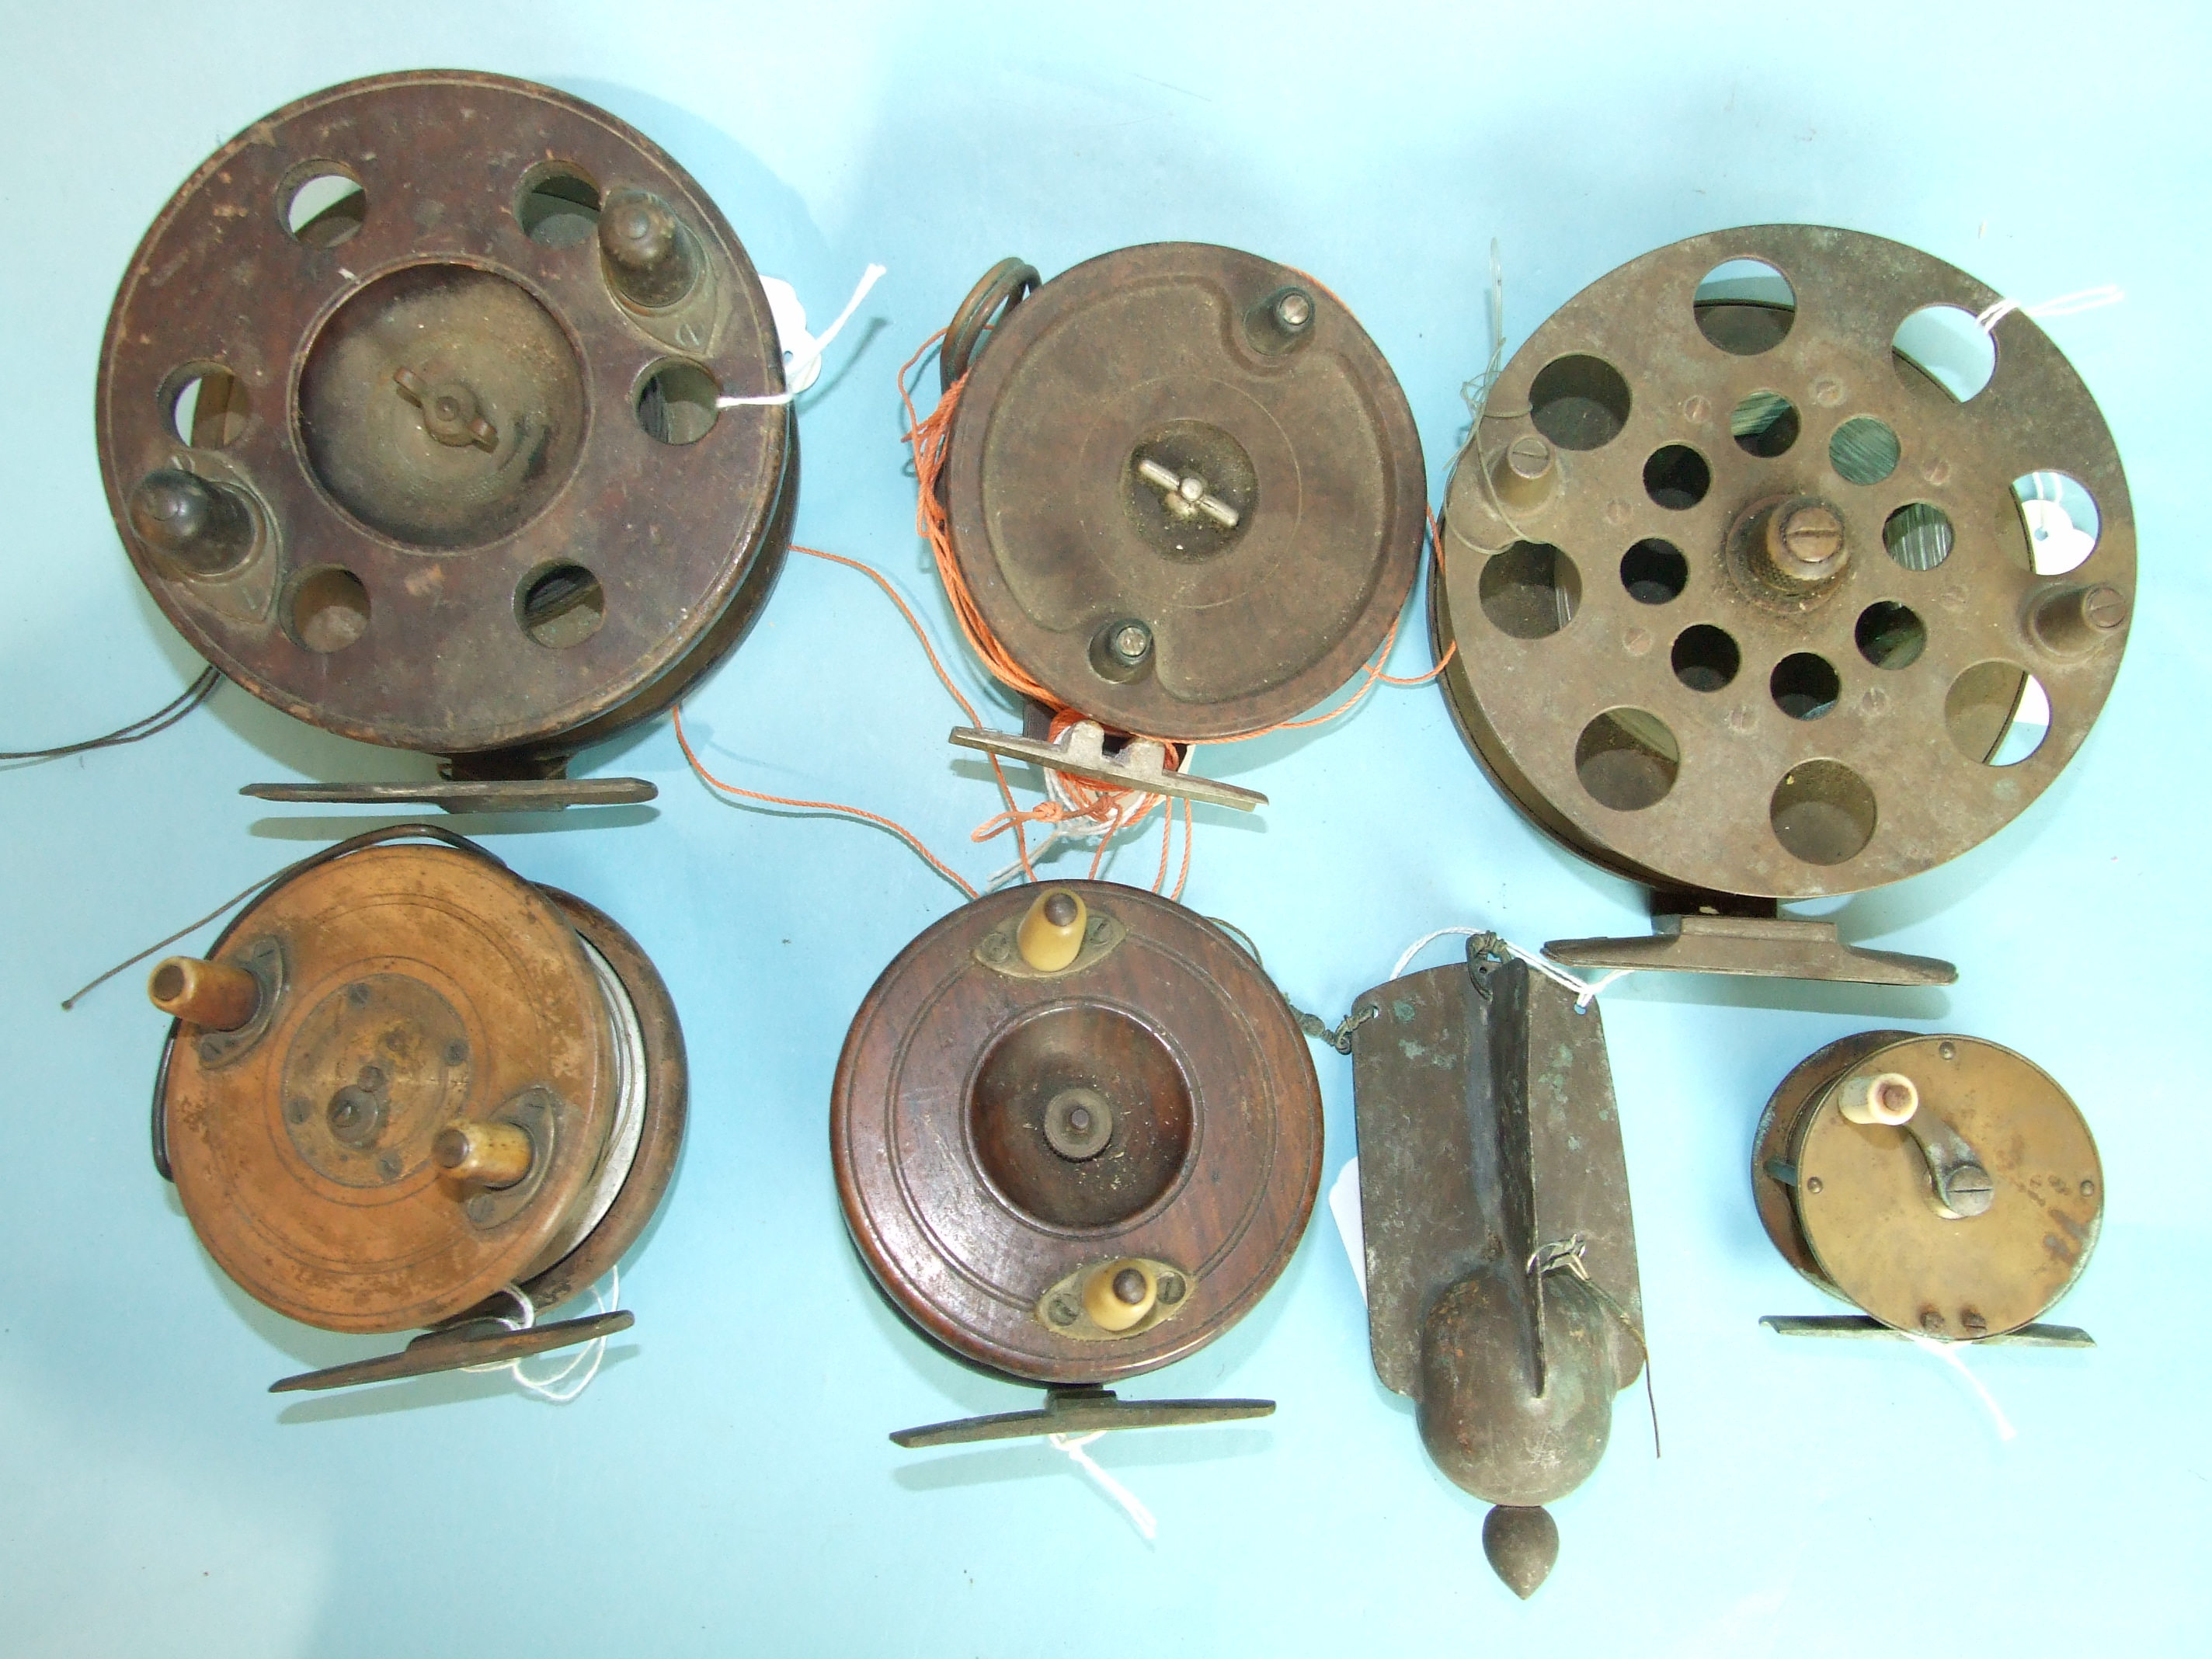 Lot 428 - Three 19th century wooden trolling reels, an Alcocks Bakelite reel, a 19th century brass winch and